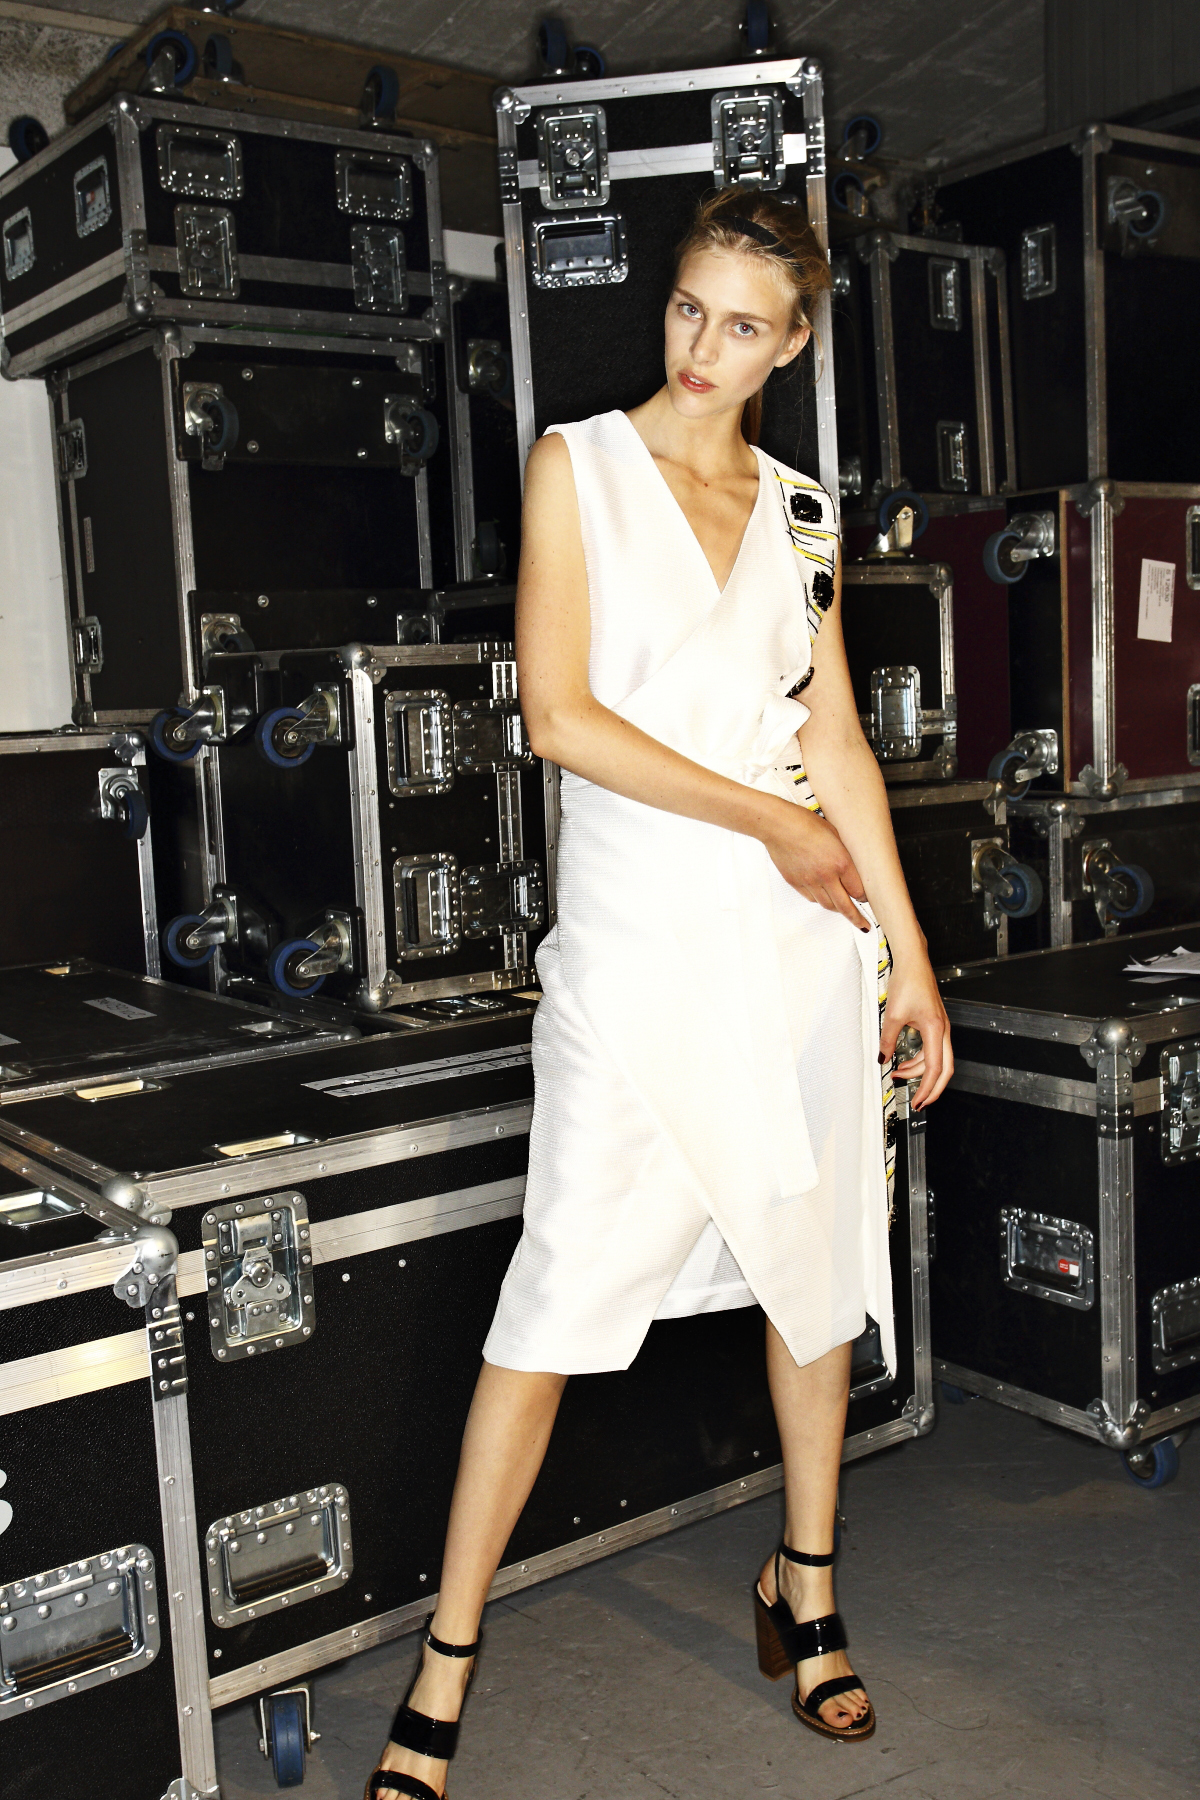 Altewai Saome SS15 Fashion Show Stockholm Backstage